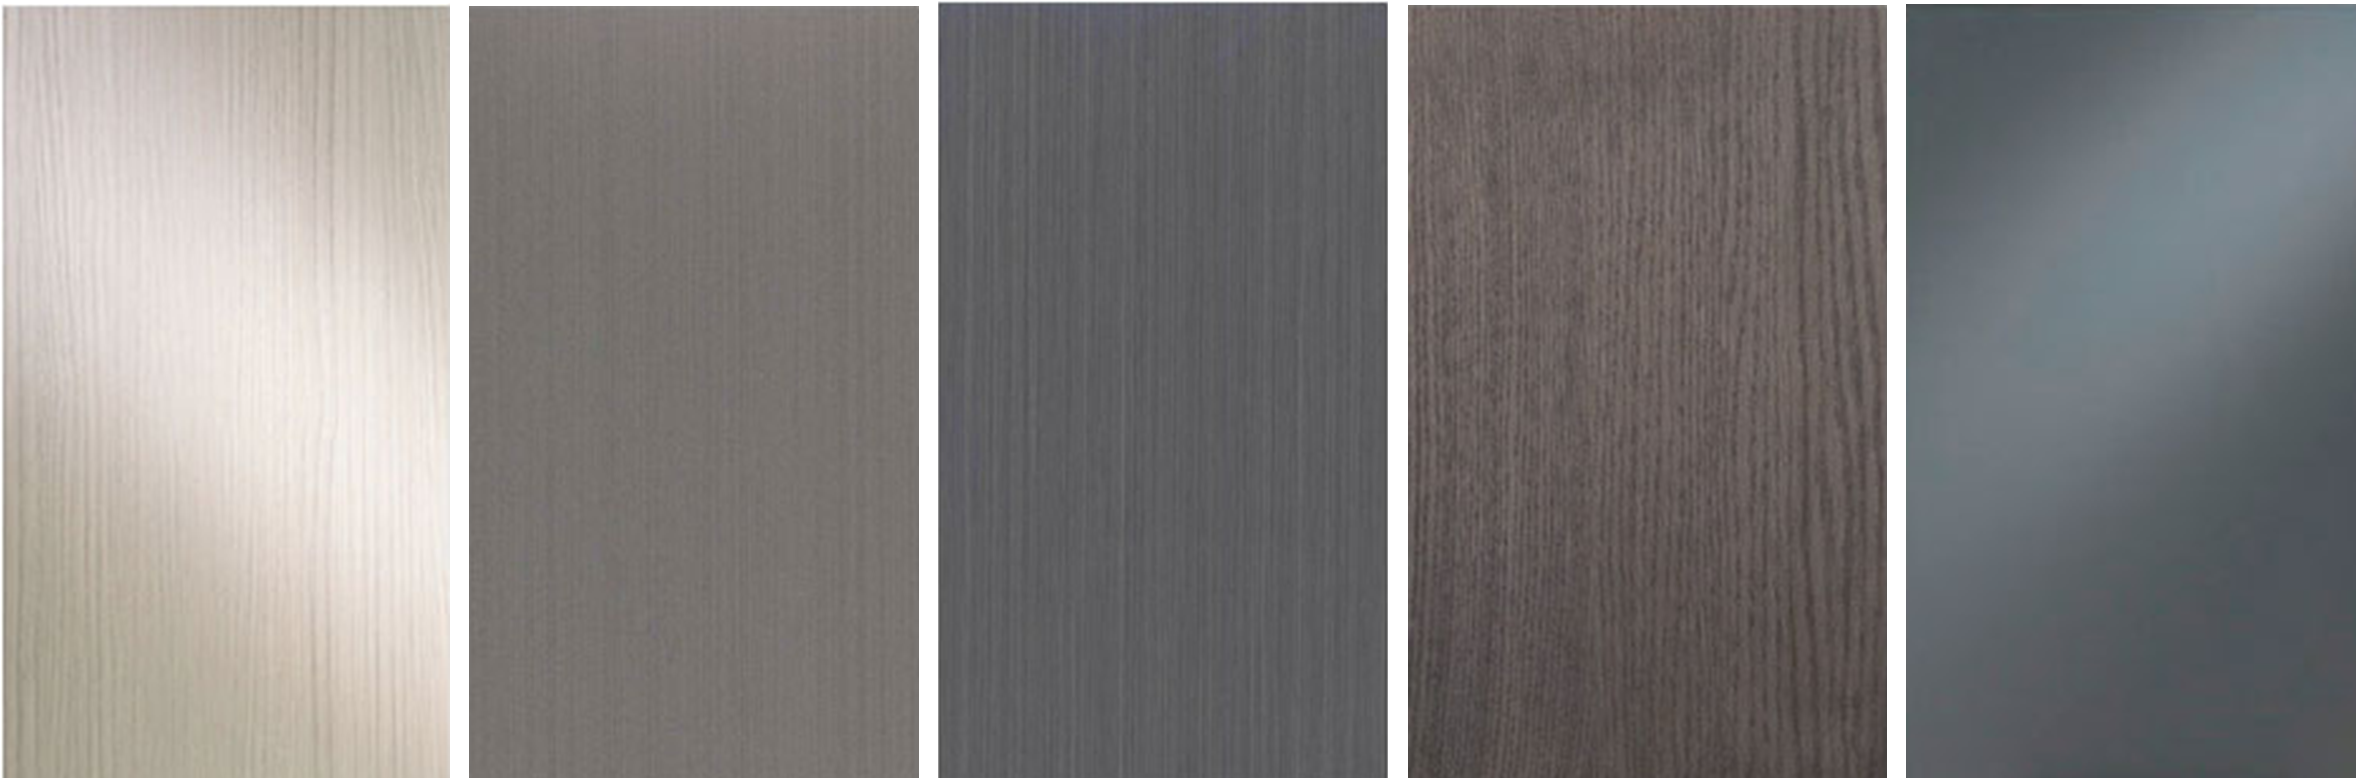 kitchen cabinet laminate veneer laminate kitchen cabinets Gray Laminate Kitchen Cabinets Quicua